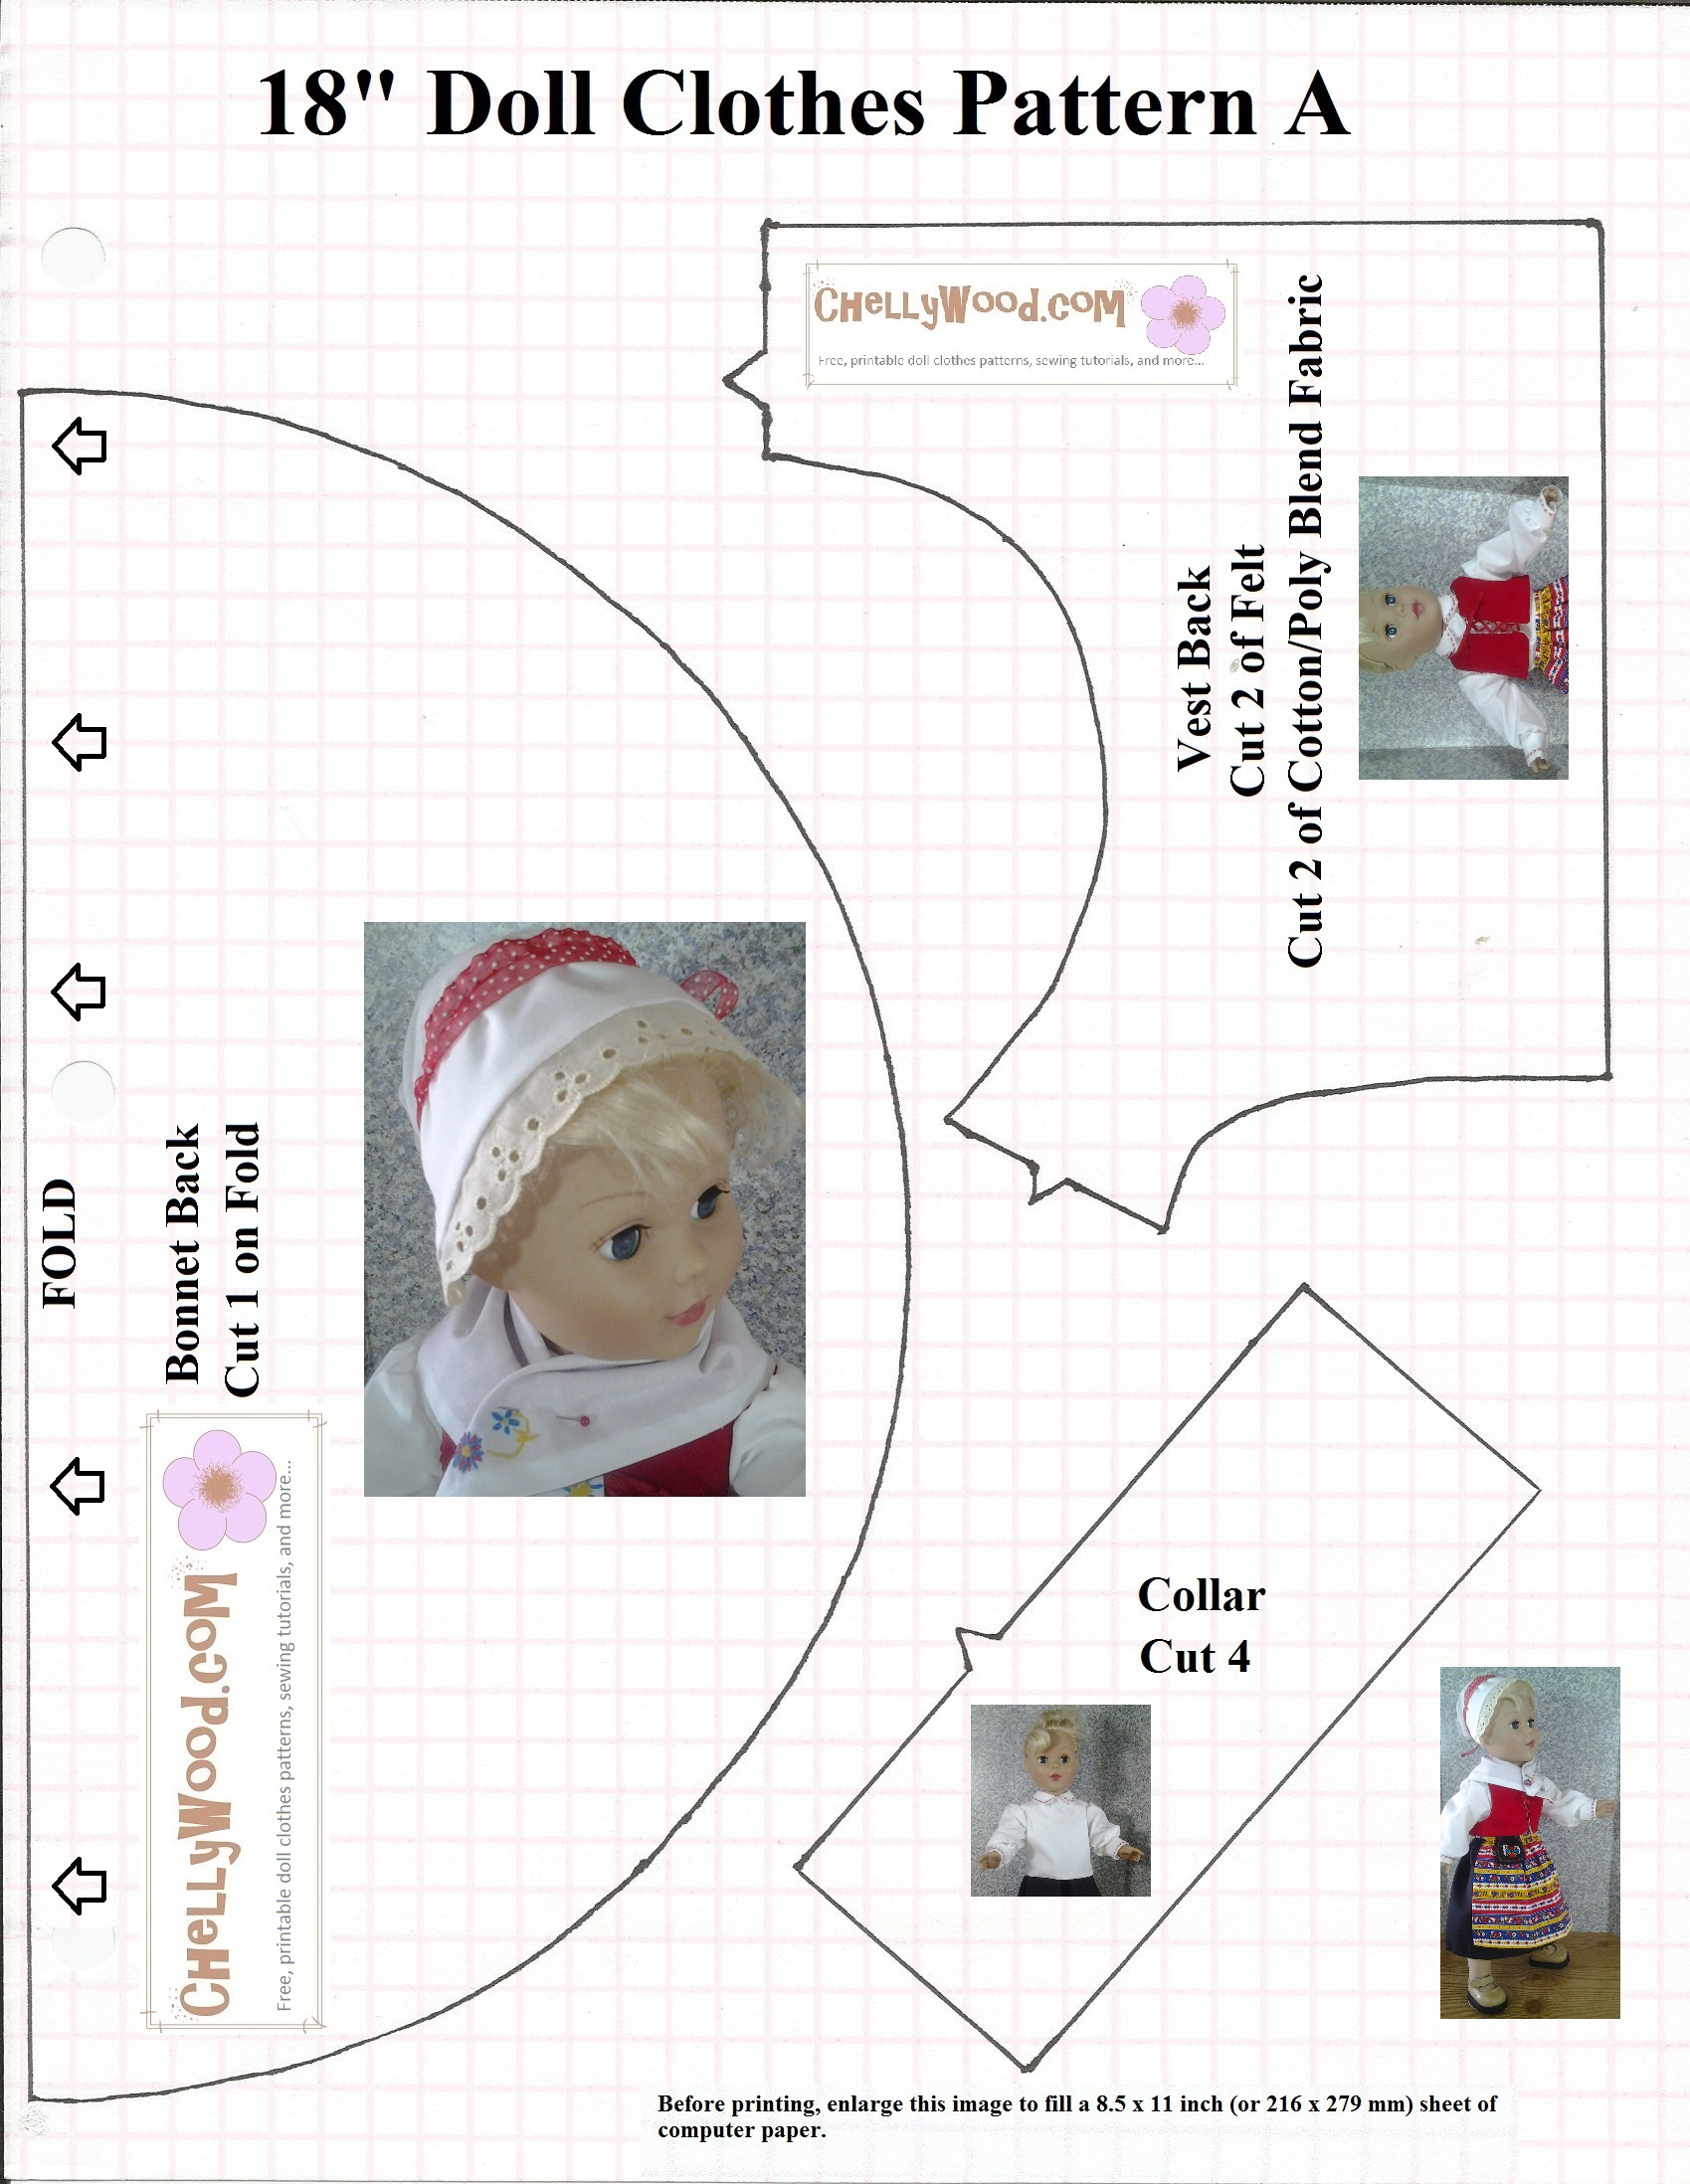 Chellywood Offers Free Printable Doll Clothes Patterns Of - Free Printable Doll Clothes Patterns For 18 Inch Dolls